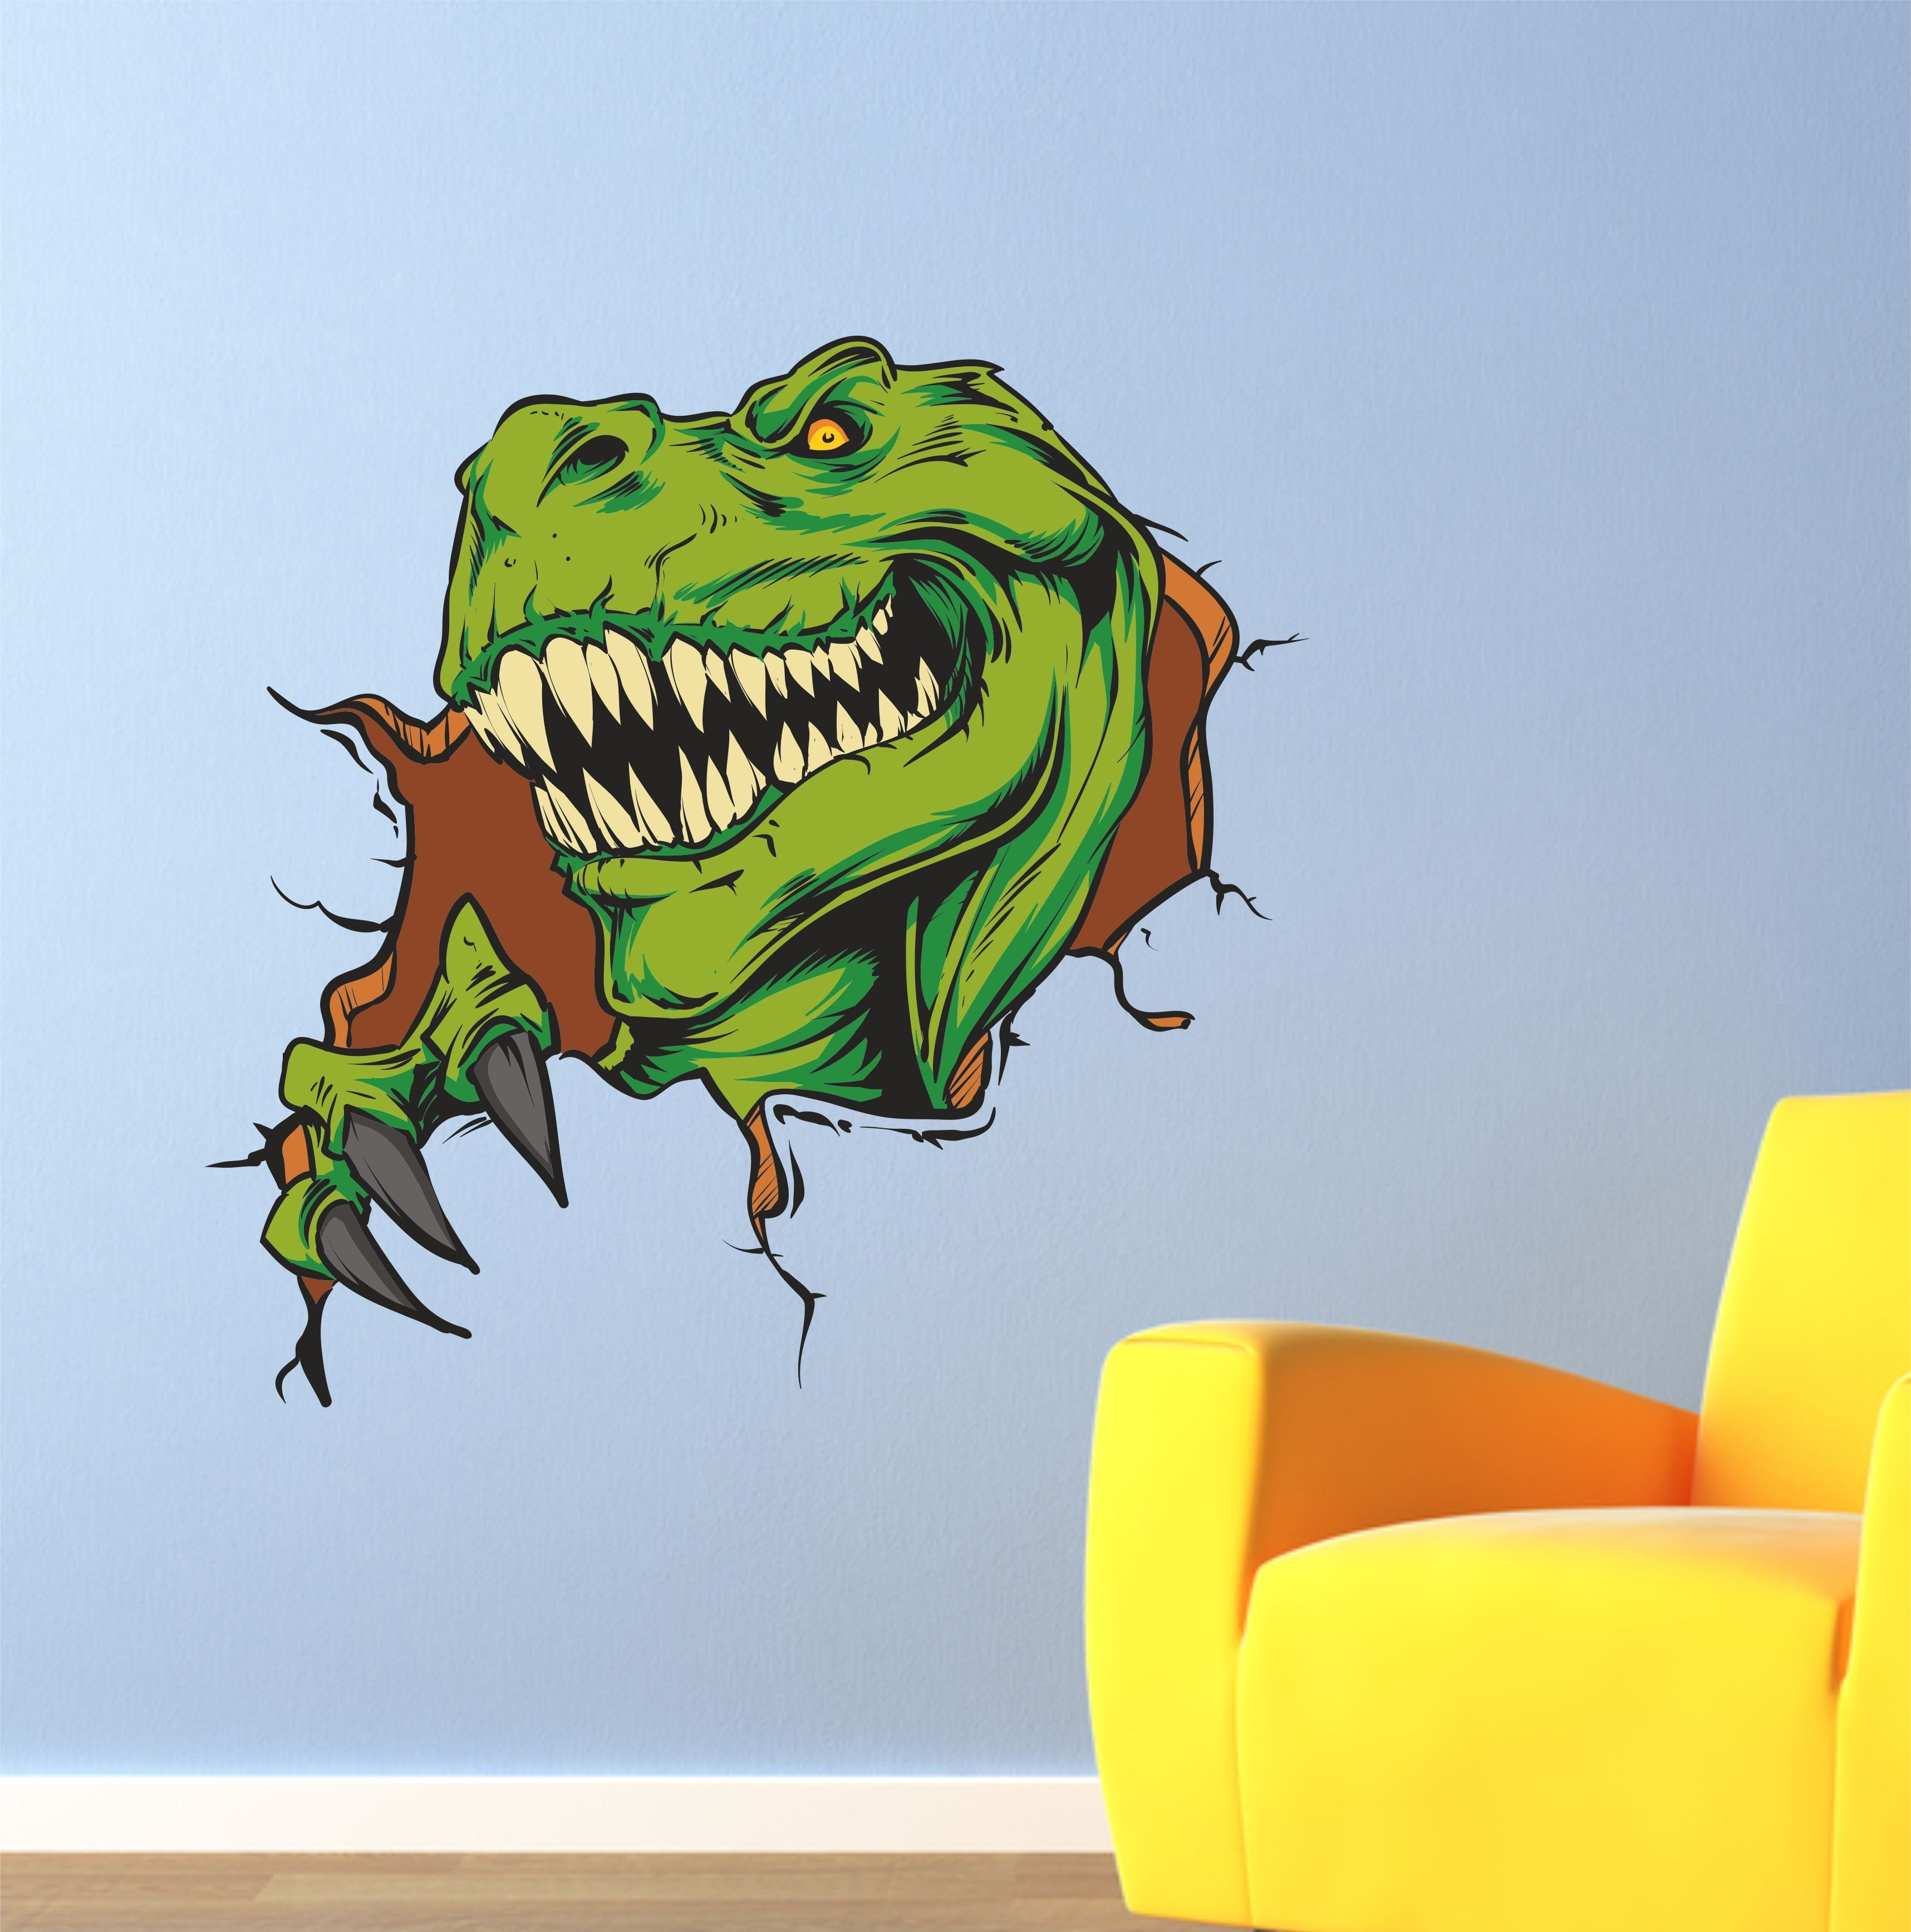 The Grafix Studio | Scary Dinosaur Wall Art Sticker Vinyl With Most Up To Date Dinosaur Wall Art (View 3 of 20)